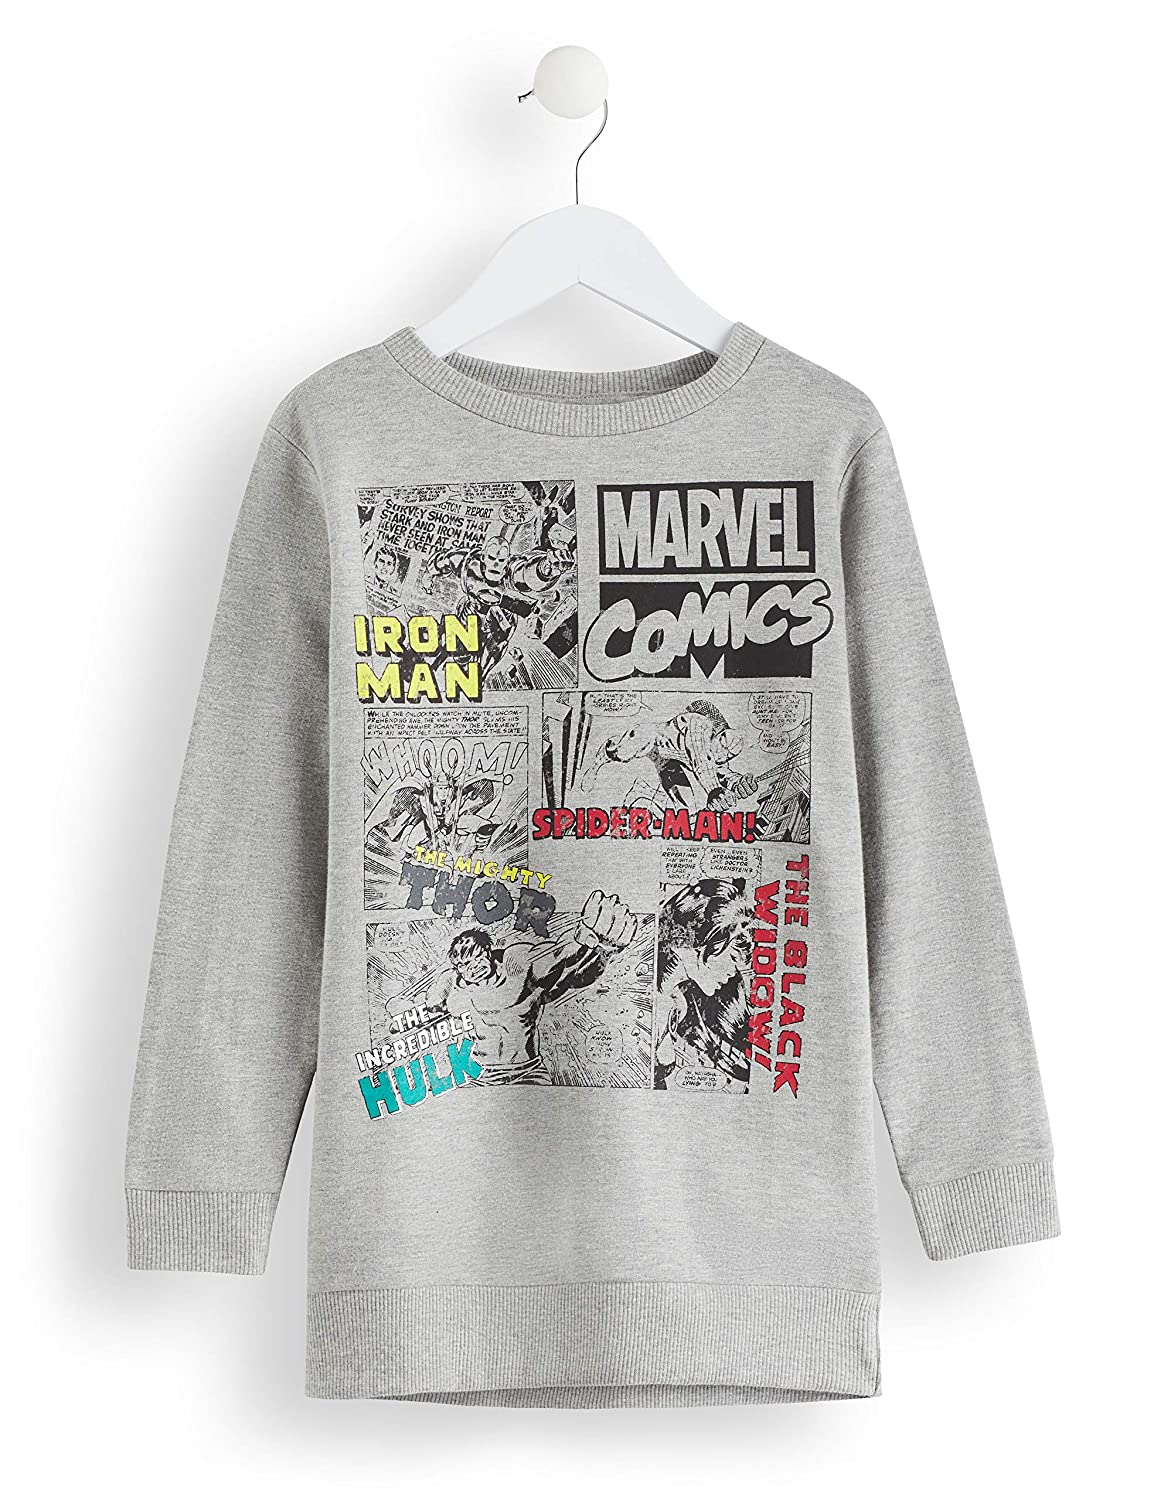 RED WAGON Boy's Marvel Avengers Sweatshirt MRC-153342